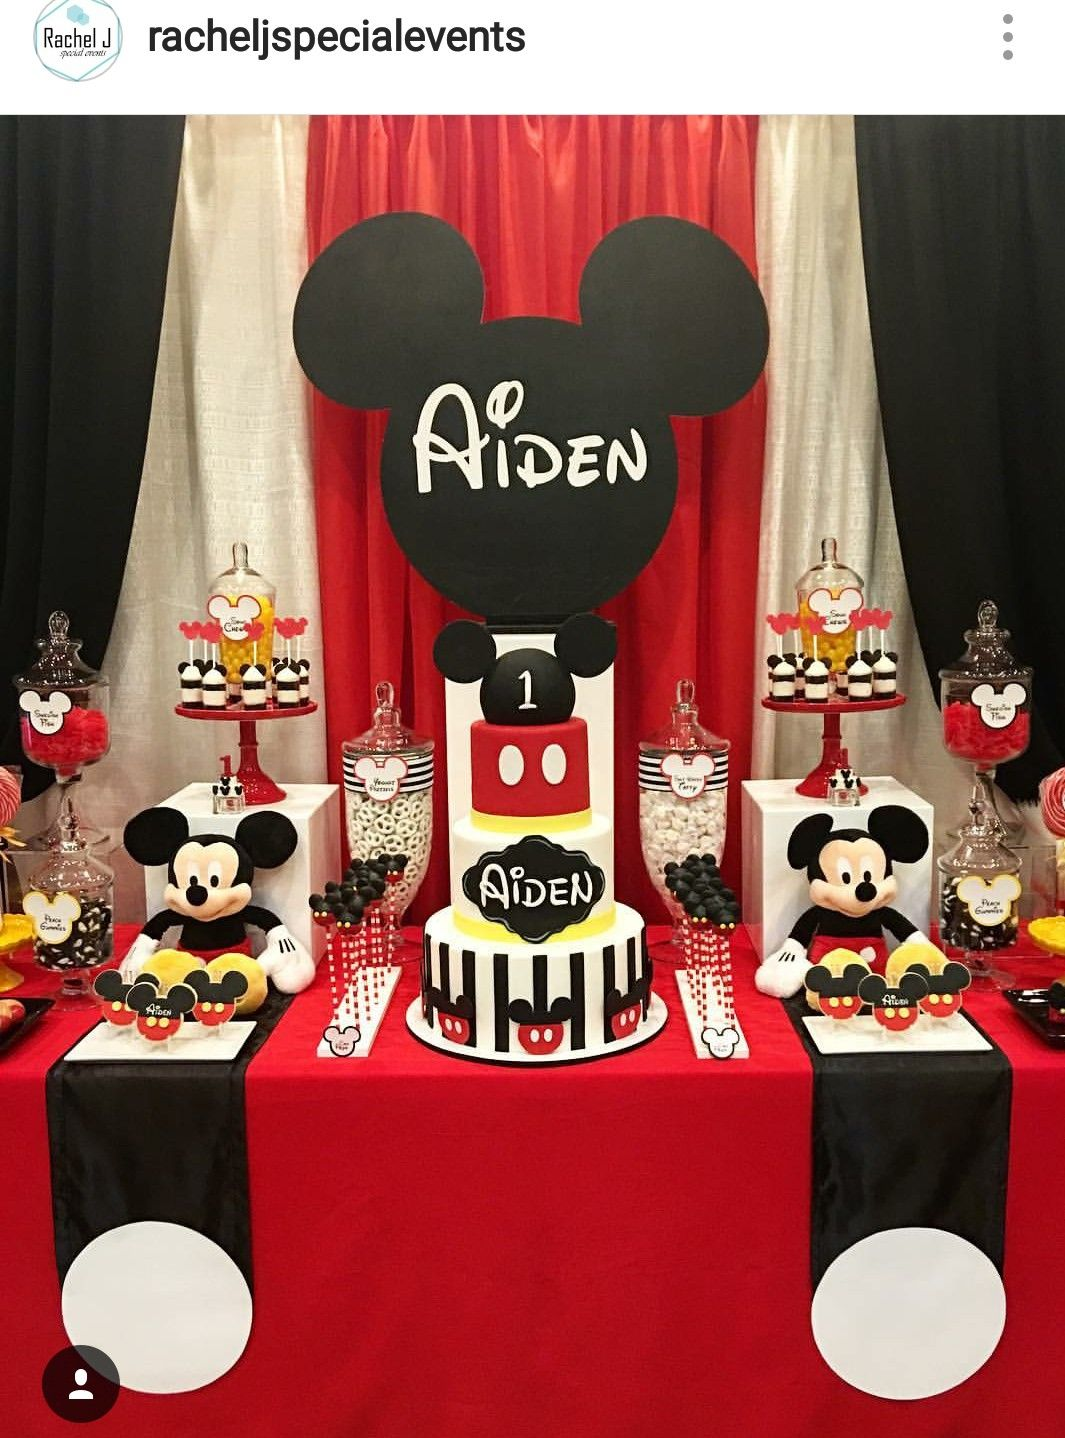 Mickey Mouse Theme Birthday Party Dessert Table And Decor Decoracion Cumpleanos Mickey Mouse Fiestas Mickey Mouse Decoracion Mickey Cumpleanos Decoracion